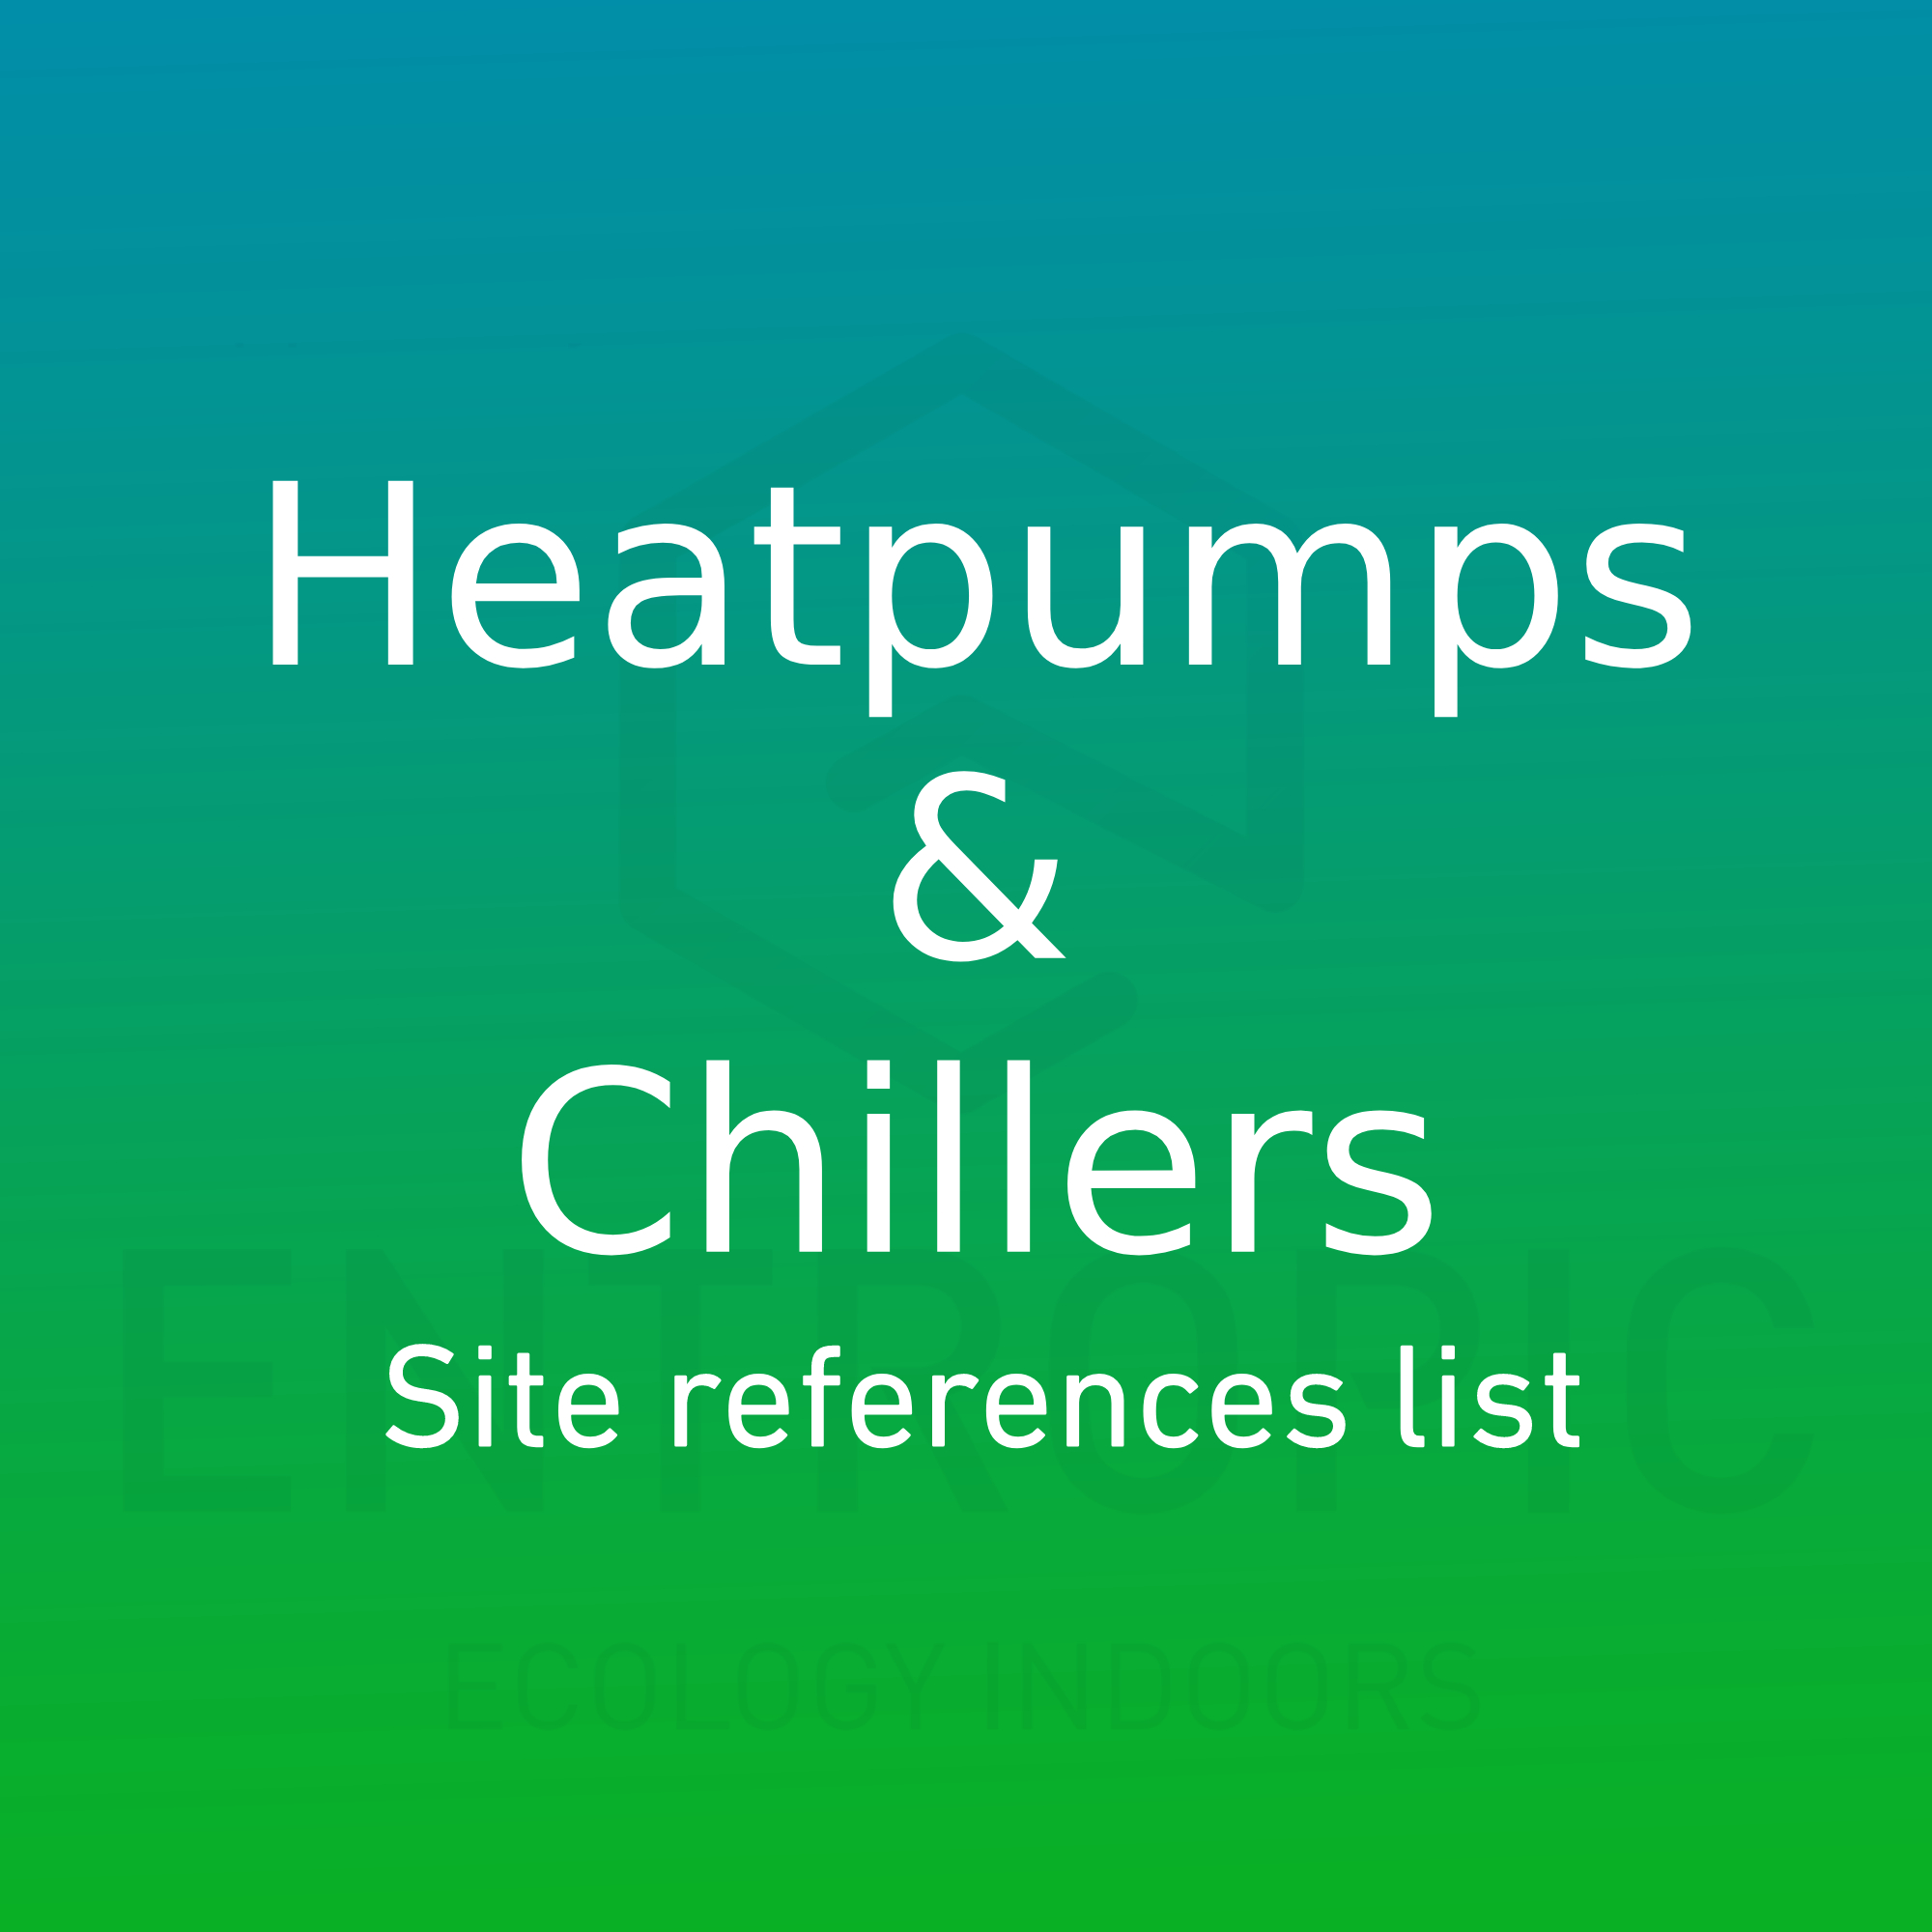 site-reference-chillers-list